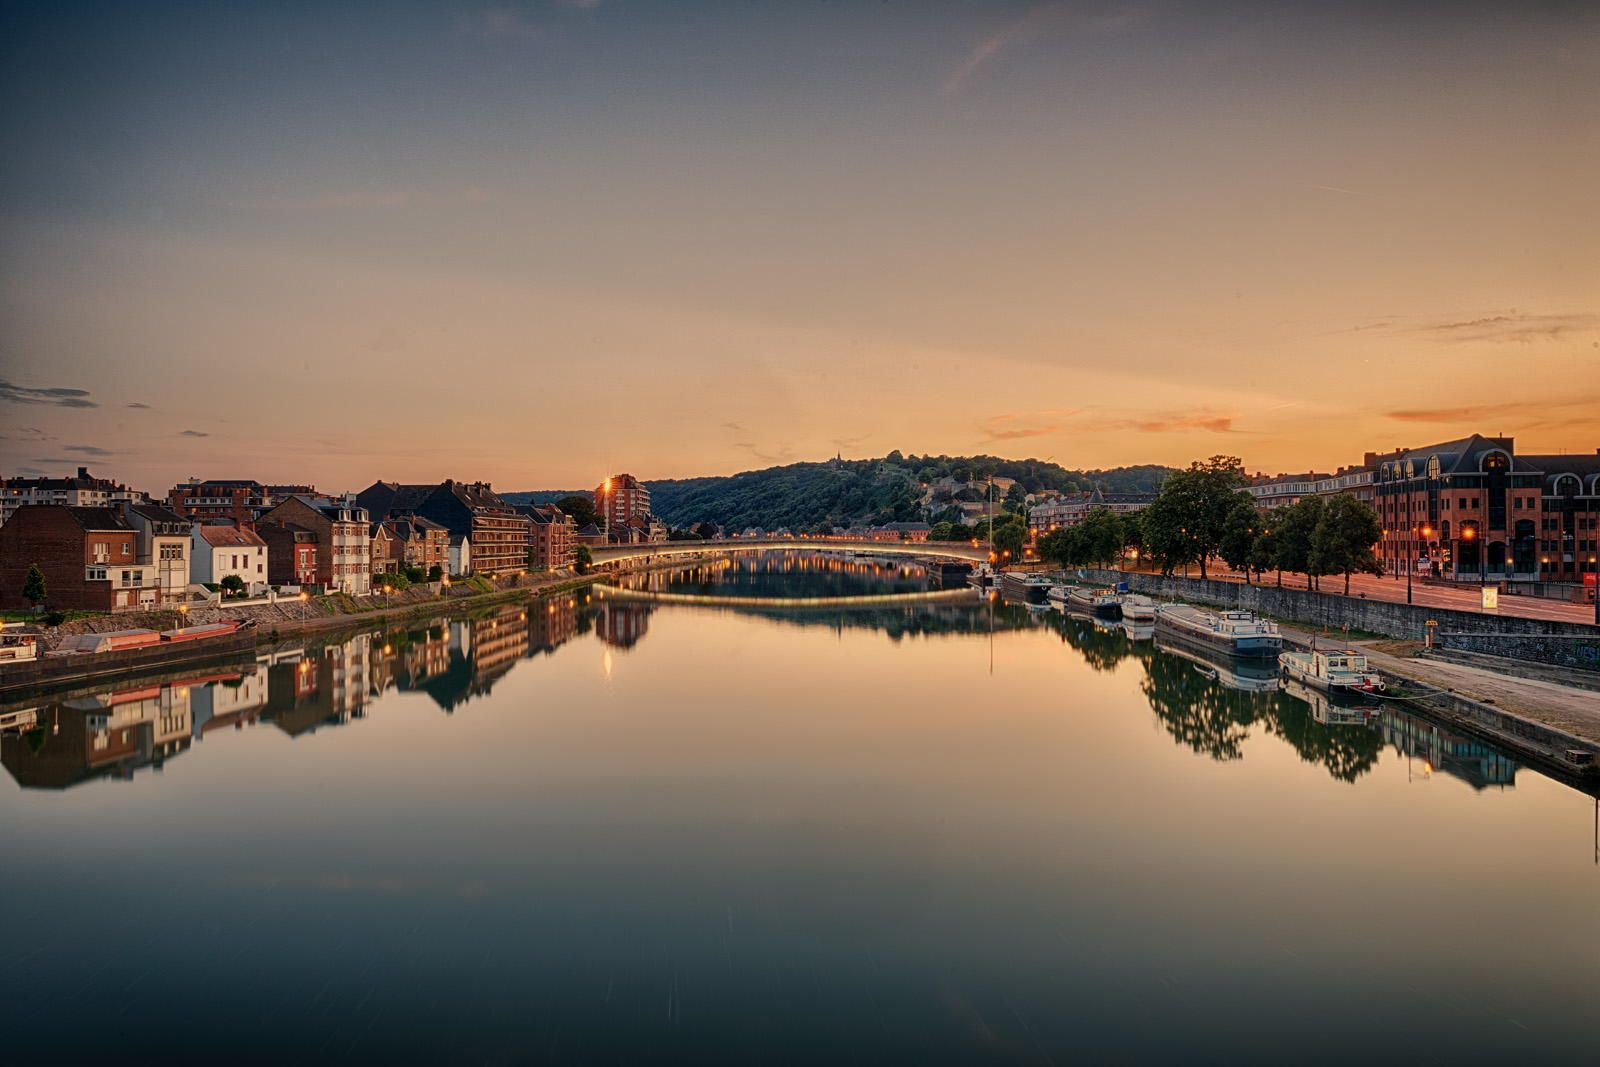 The Meuse River in Namur by Quanah Zimmerman on 500px